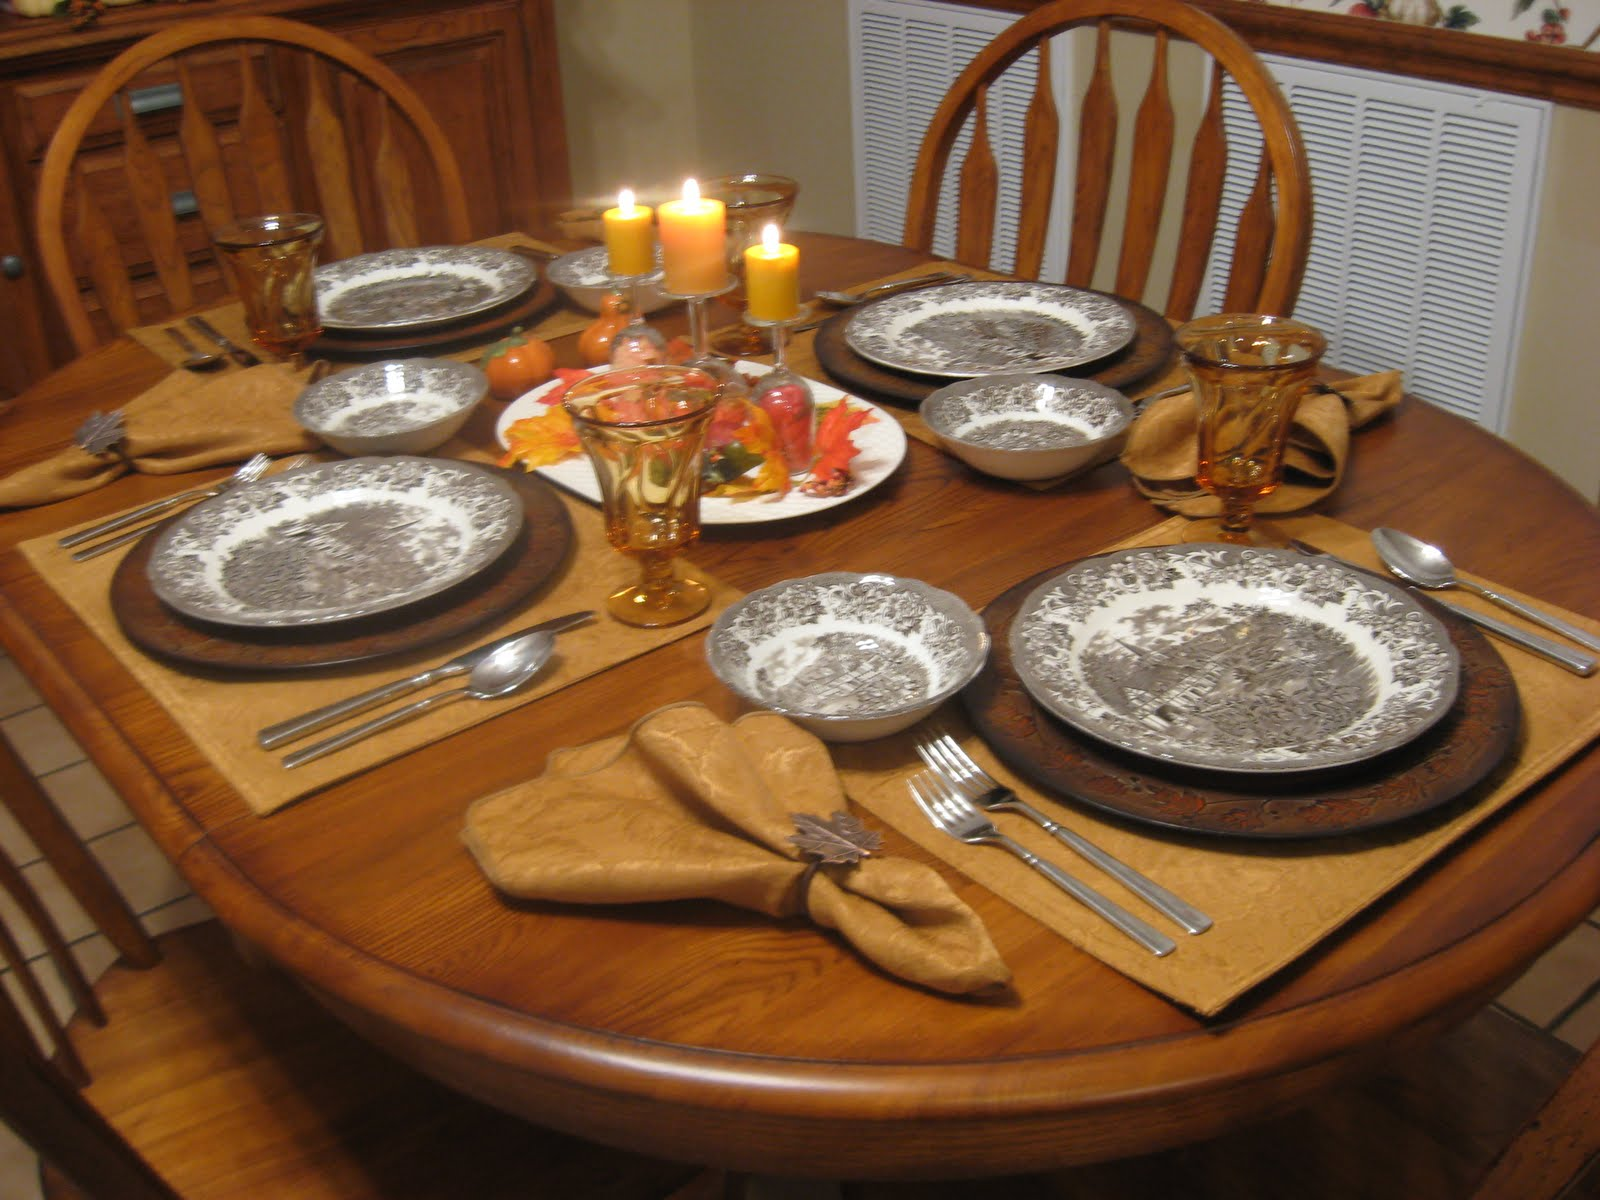 Busy at home stratford stage goes casual for Everyday kitchen table setting ideas